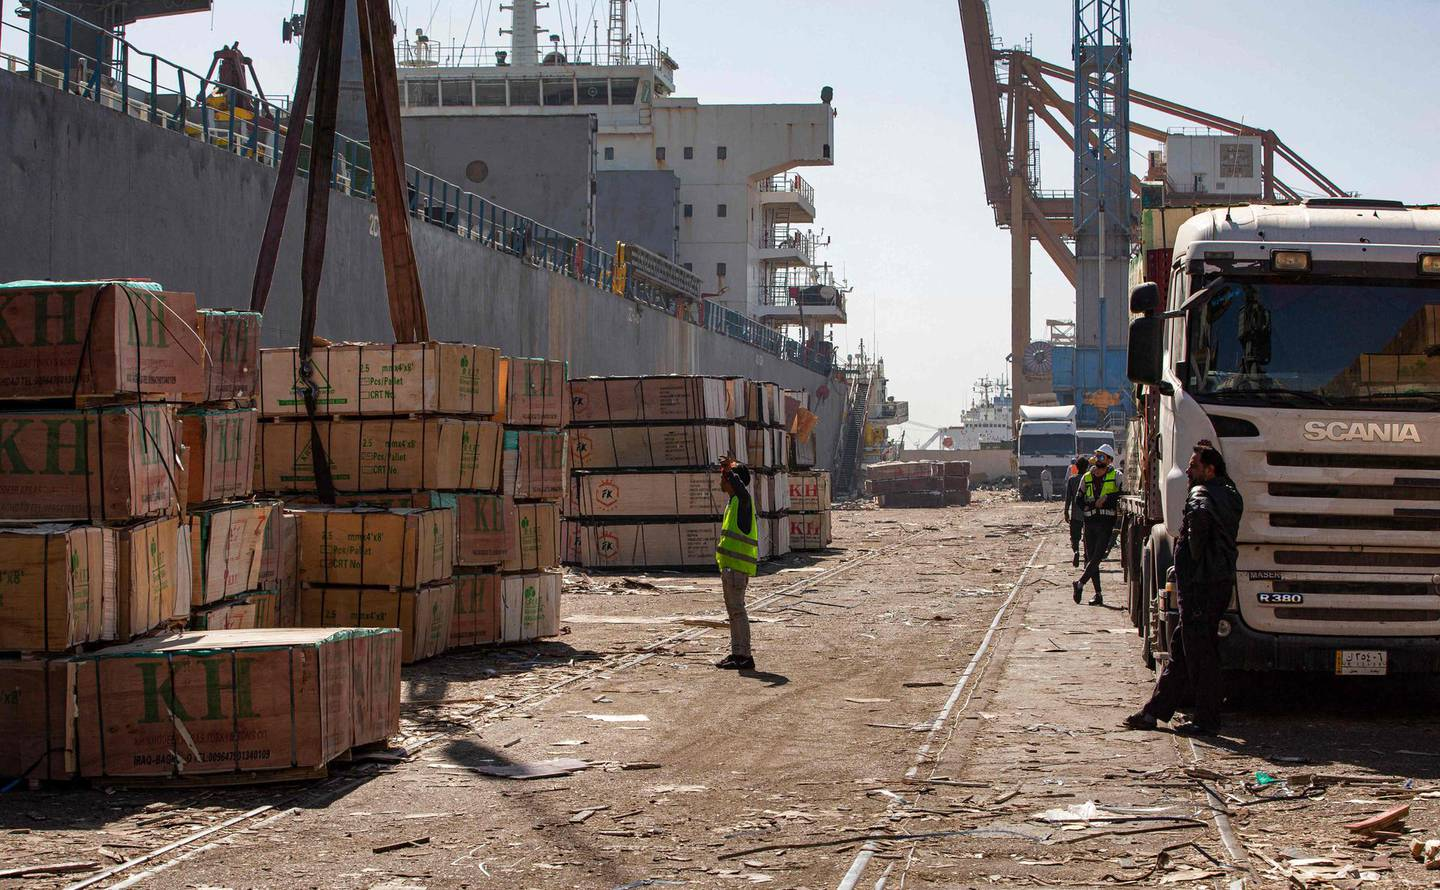 This picture taken on March 14, 2021 shows pallets of imported wood being unloaded off a cargo ship on the pier at the port of Umm Qasr, south of Iraq's southern city of Basra. Iraq is ranked the 21st most corrupt country by Transparency International. In January, the advocacy group said public corruption had deprived Iraqis of basic rights and services, including water, health care, electricity and jobs. It said systemic graft was eating away at Iraqis' hopes for the future, pushing growing numbers to try to emigrate. In 2019, hundreds of thousands of protesters flooded Iraqi cities, first railing against poor public services, then explicitly accusing politicians of plundering resources meant for the people. / AFP / Hussein FALEH